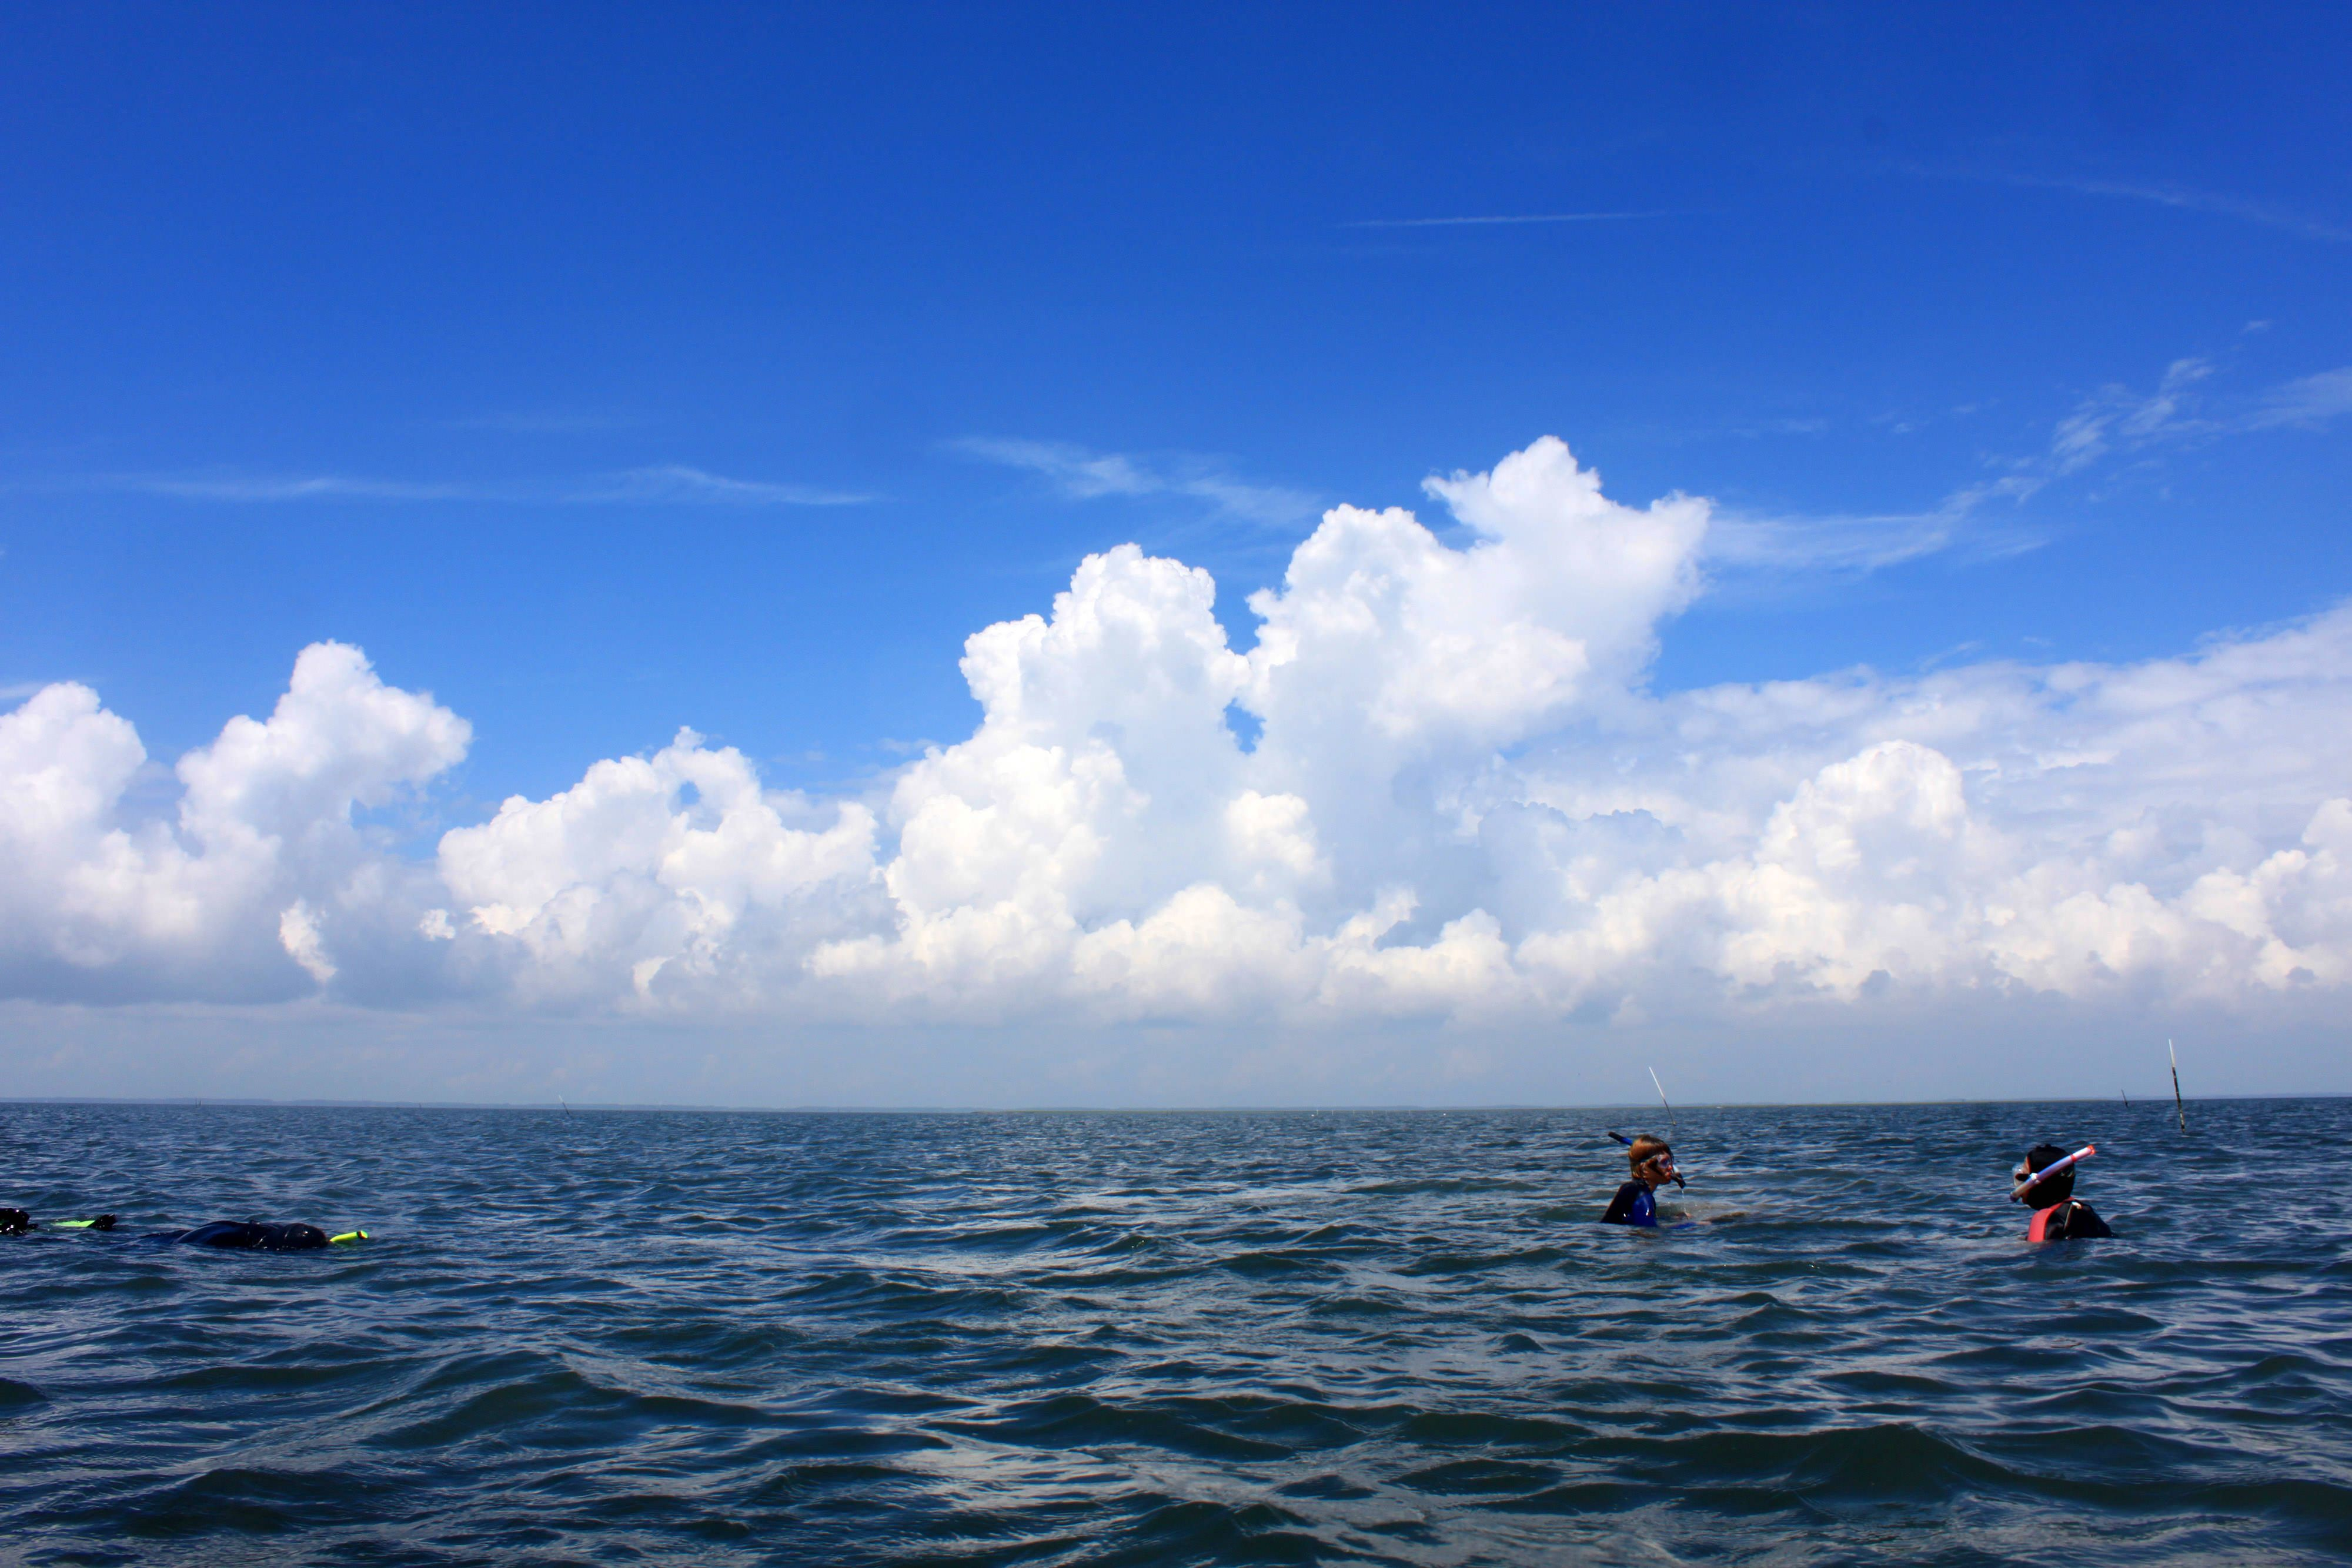 The heads of two people bob above the water while a third person floats and snorkels along the surface of a coastal bay. Large puffy white clouds fill the bright blue sky above.